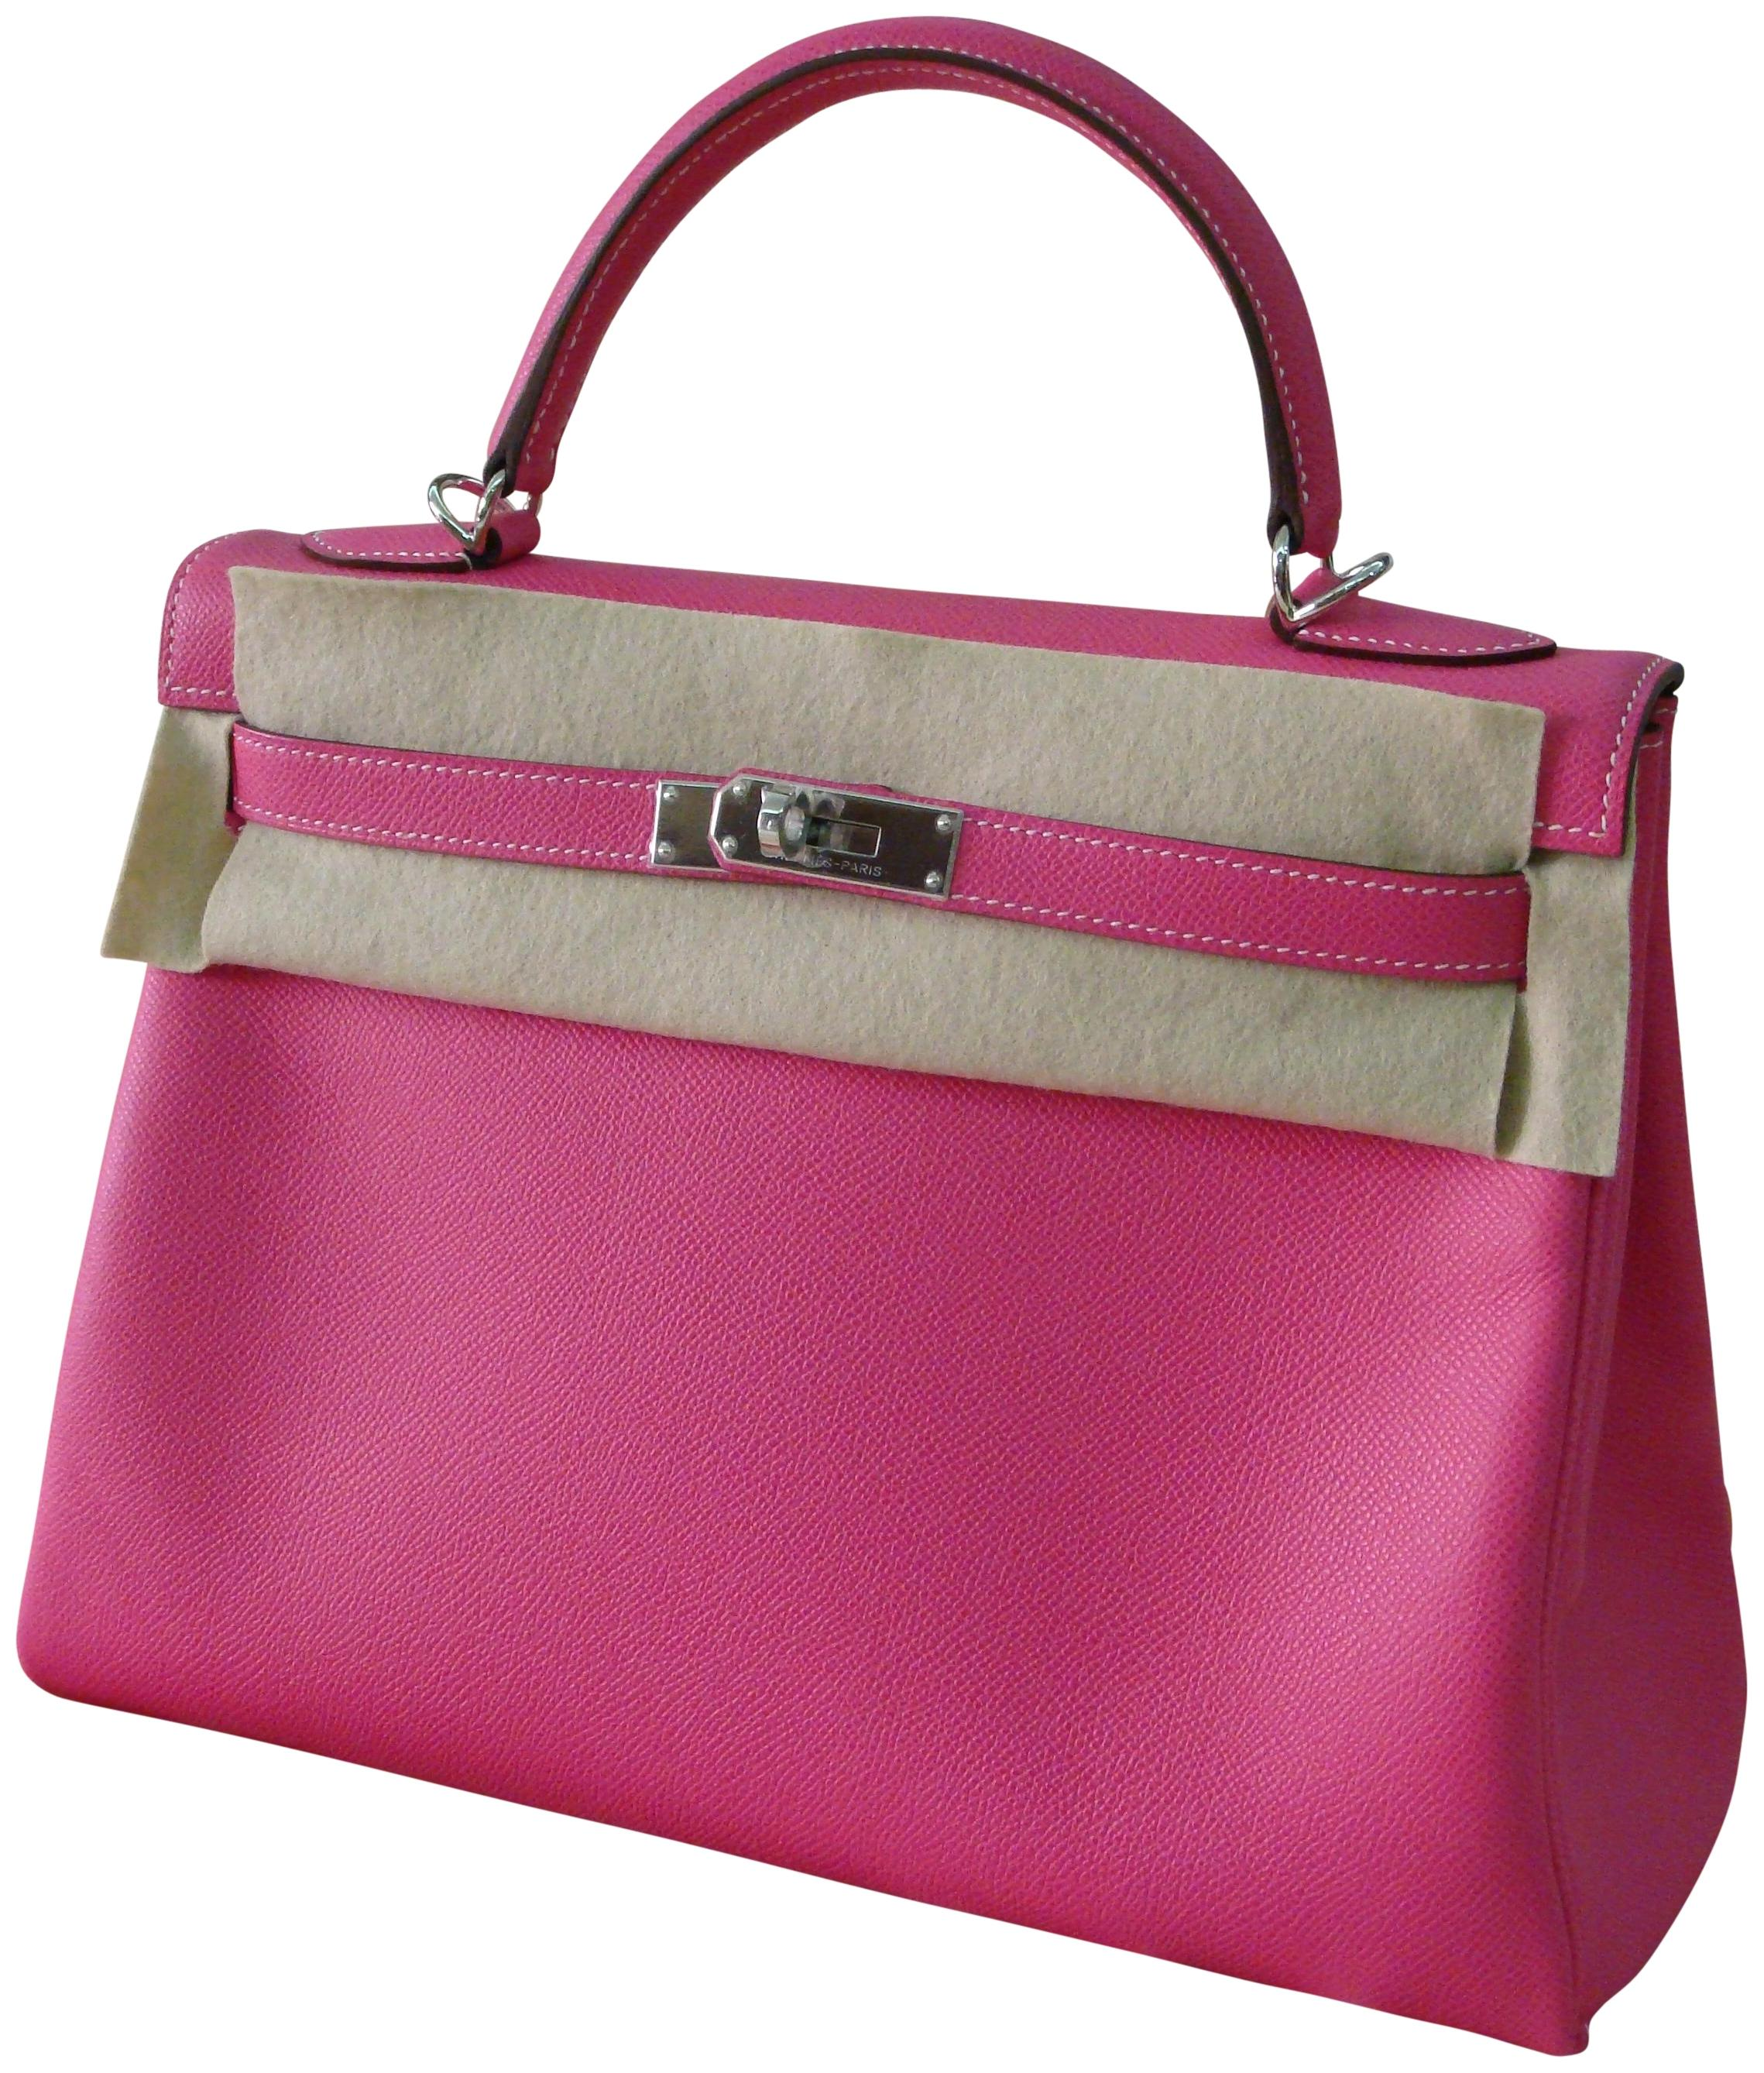 5794cf2284df ... discount code for hermès kelly pink kelly 32cm satchel in rose tyriene  c9e21 6e0e8